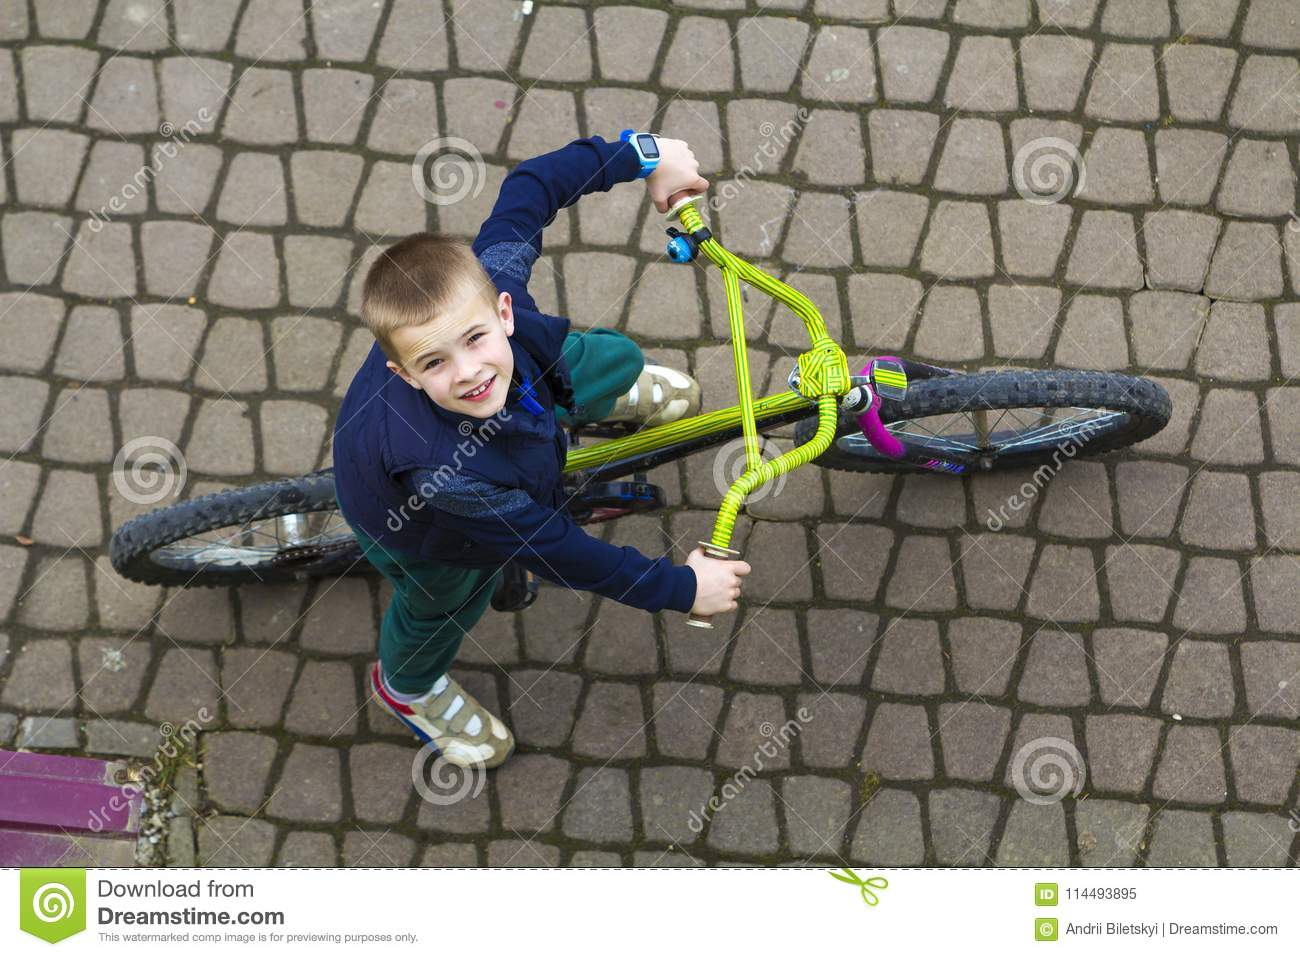 Top view of handsome young smiling boy riding a bicycle on cool spring day looking upward. Outdoors activities.healthy lifestyle a